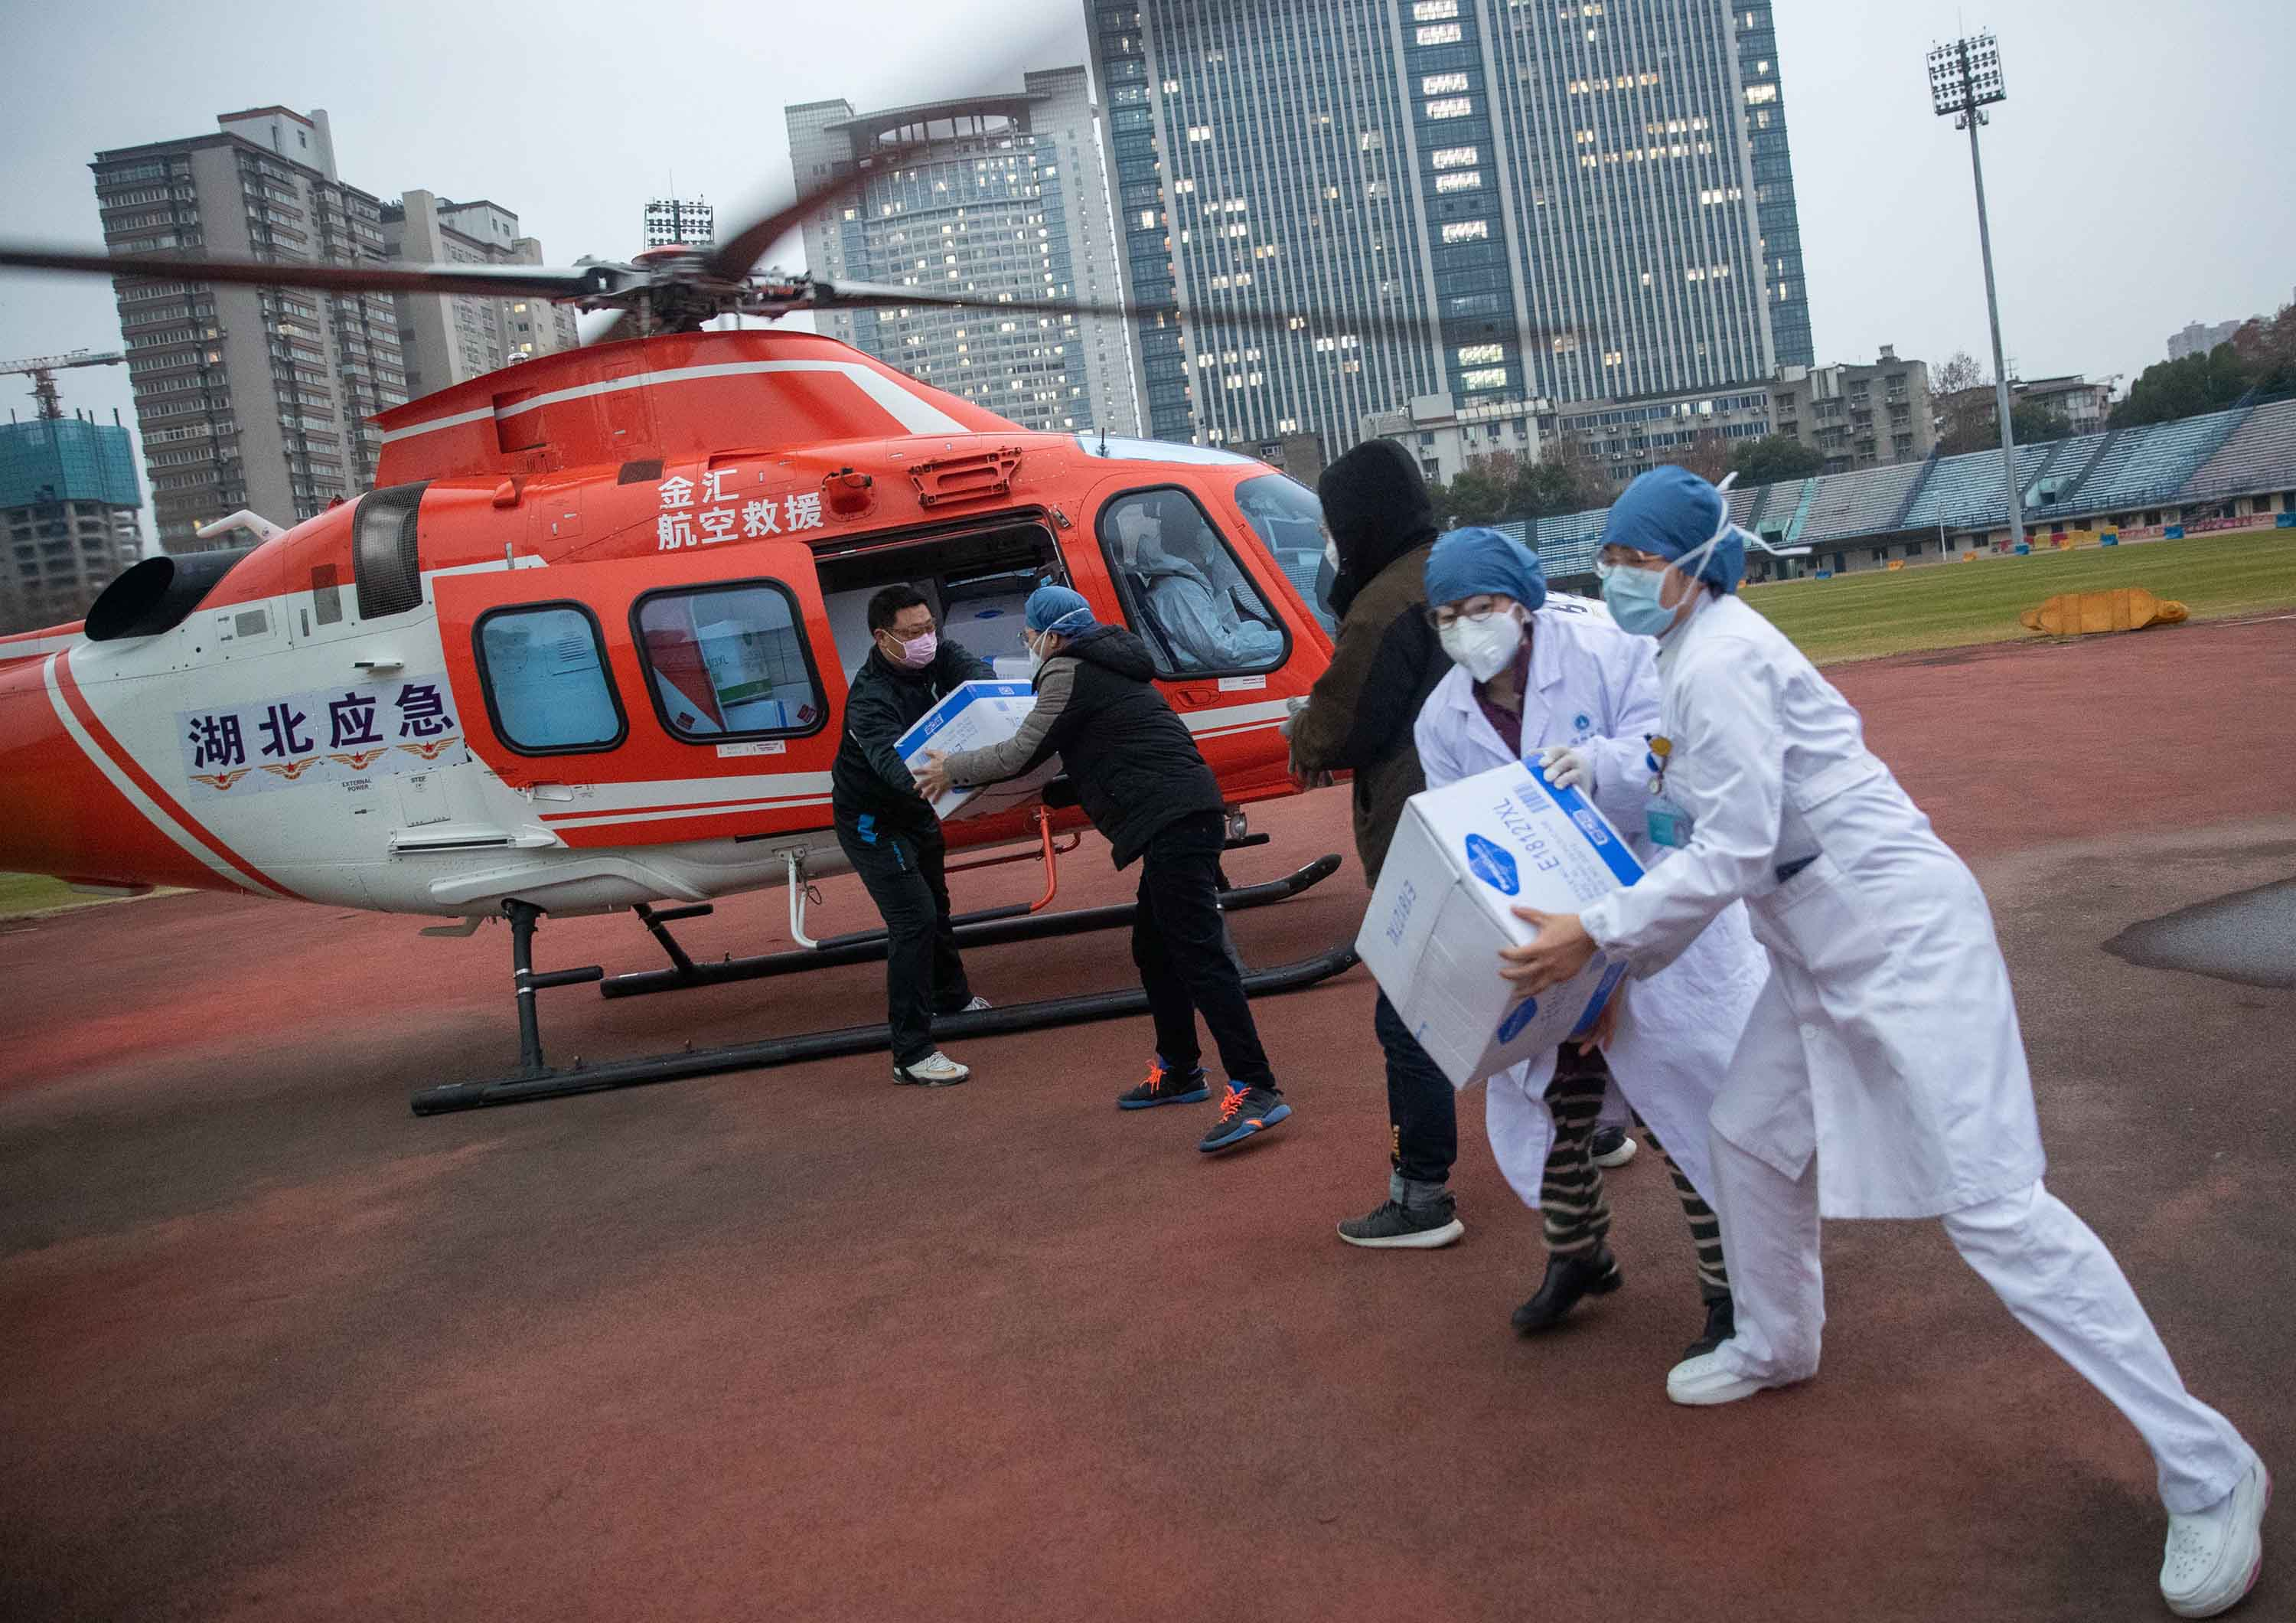 Medical staff unload supplies from a helicopter in Wuhan on February 1.